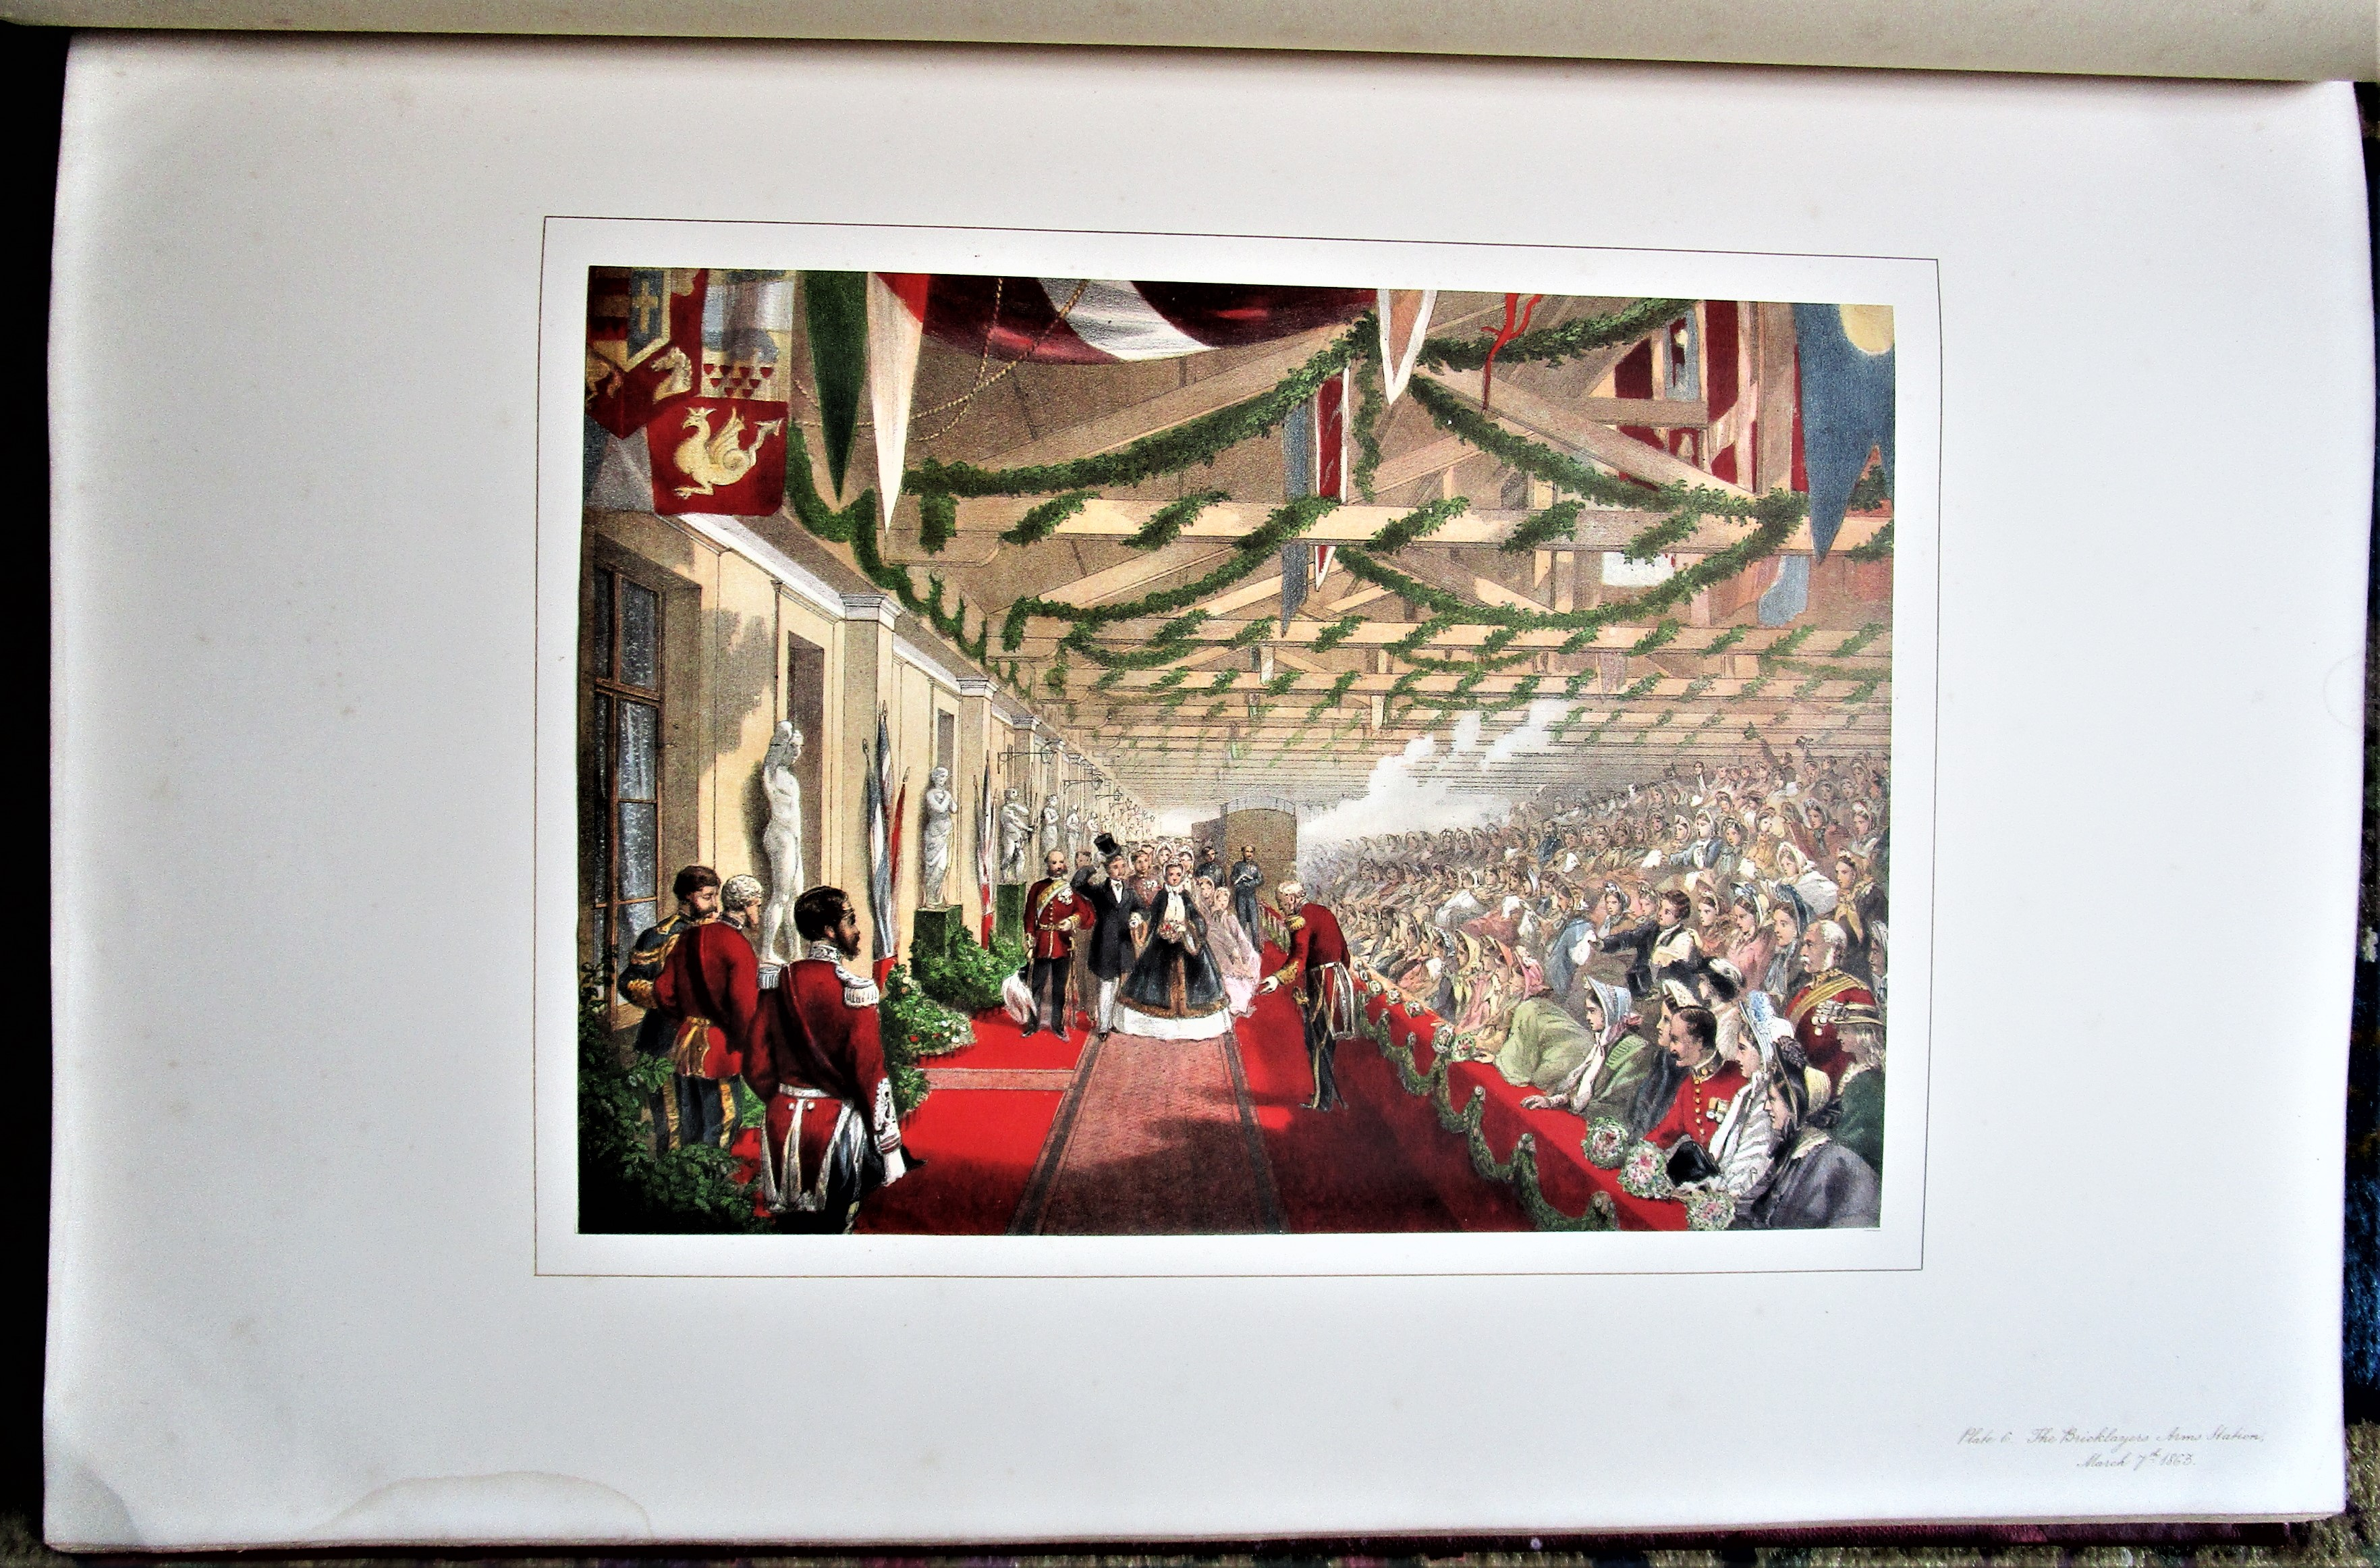 MEMORIAL OF THE MARRIAGE OF ALBERT EDWARD PRINCE OF WALES, by W.H. Russell; R. Dudley - 1863